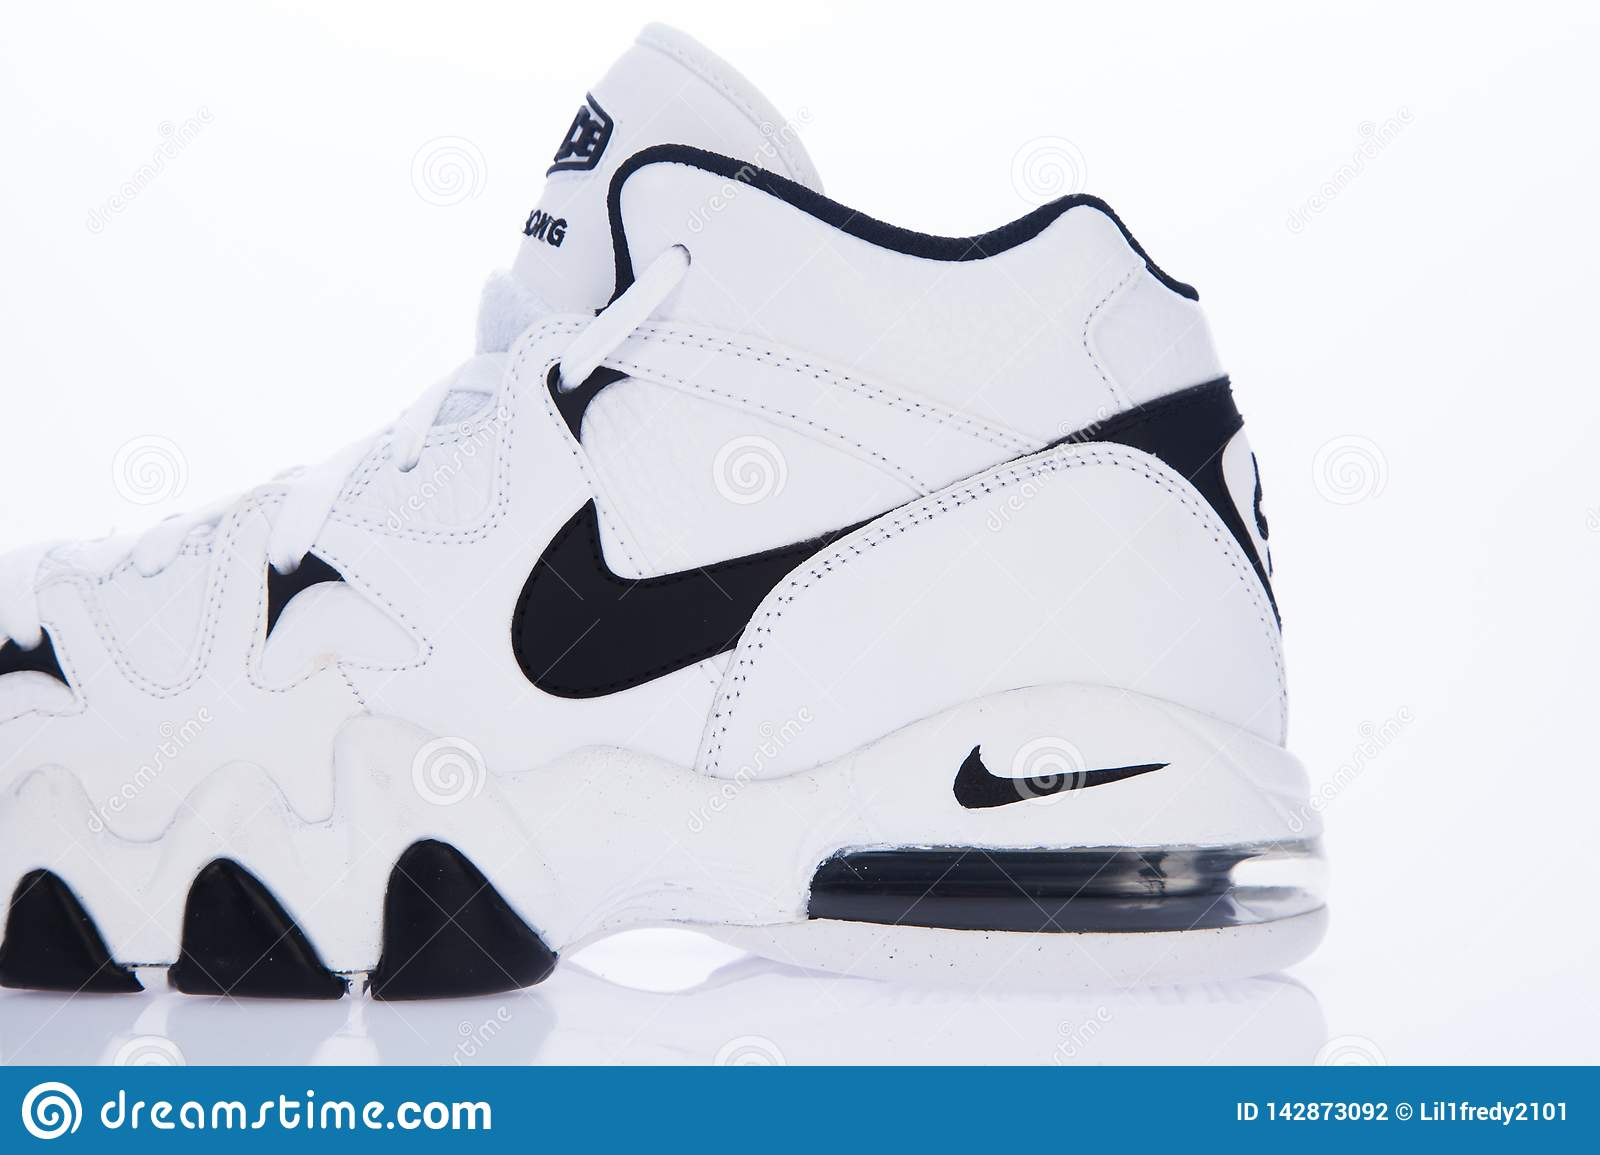 new style nike shoes Online shopping